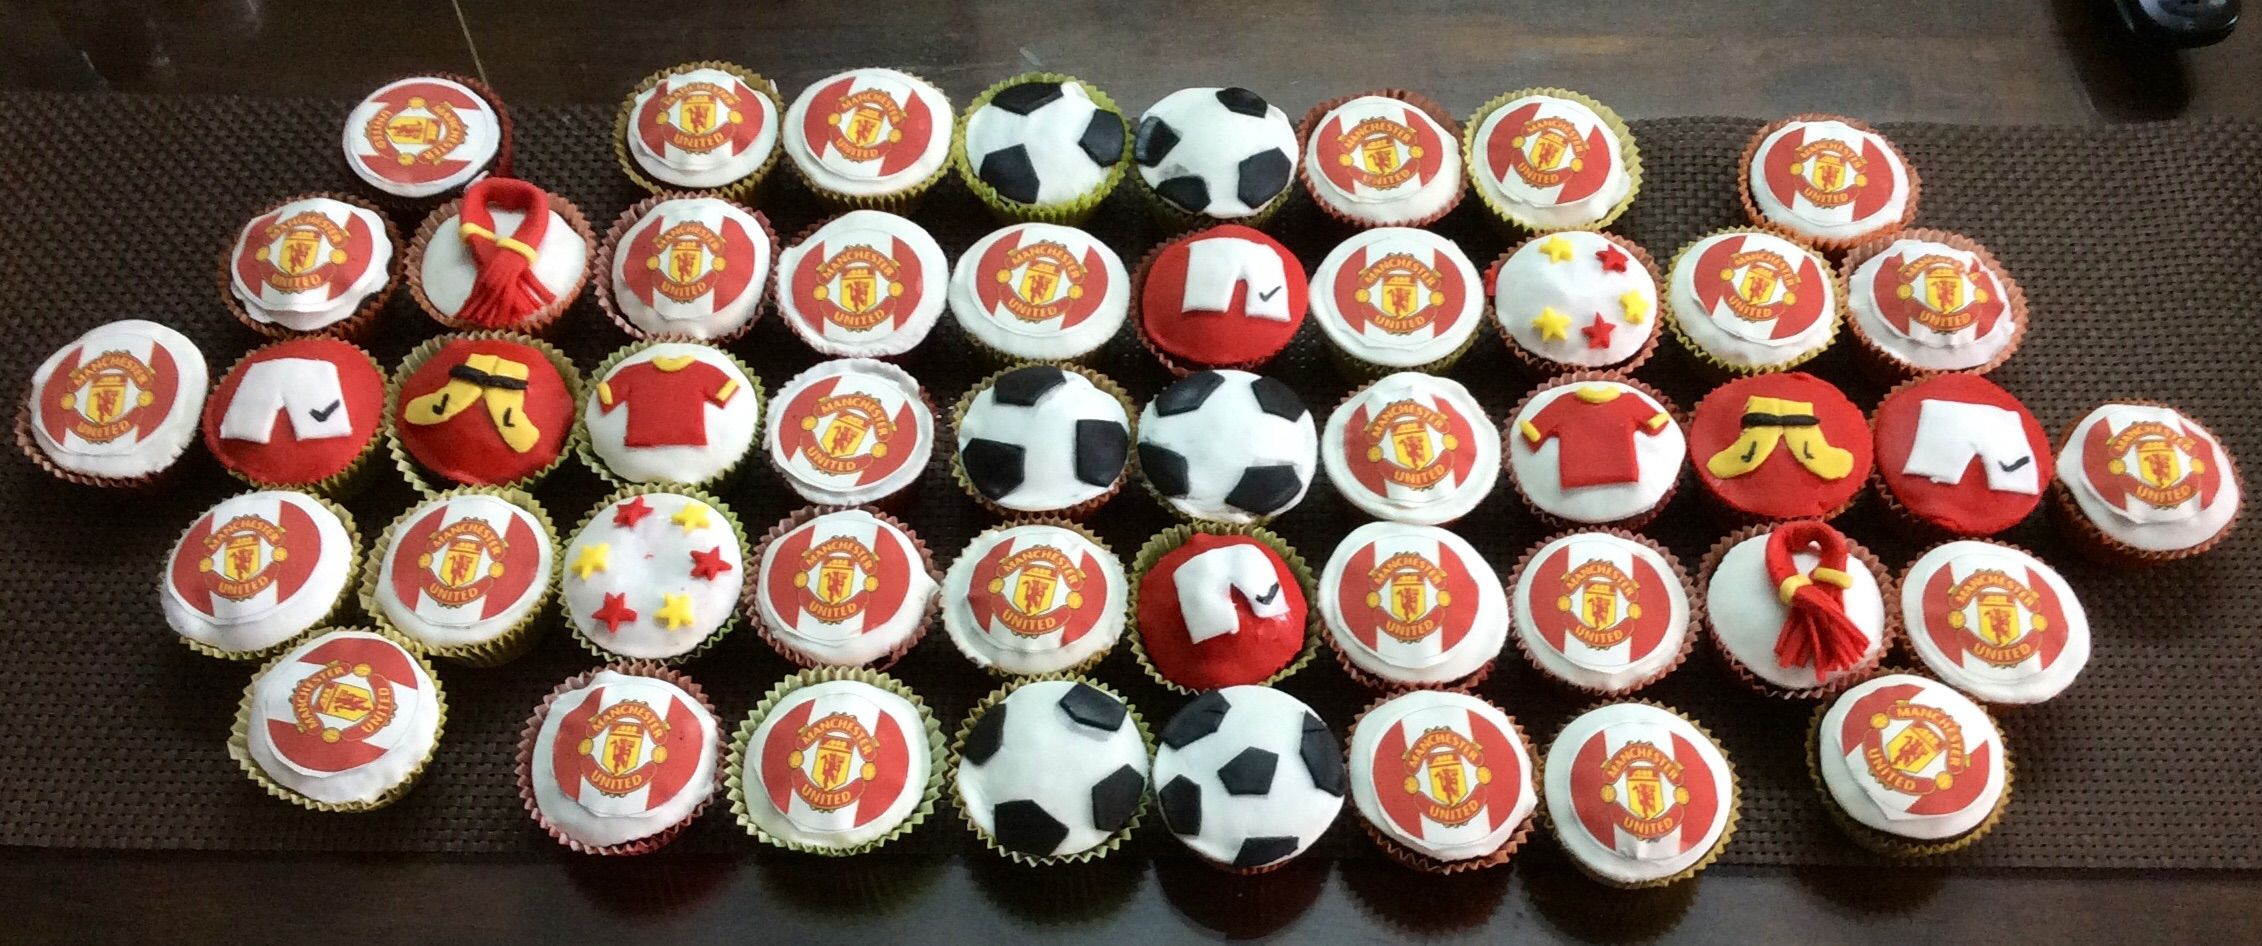 Manchester United Cup Cakes Cake Holiday Decor Holiday